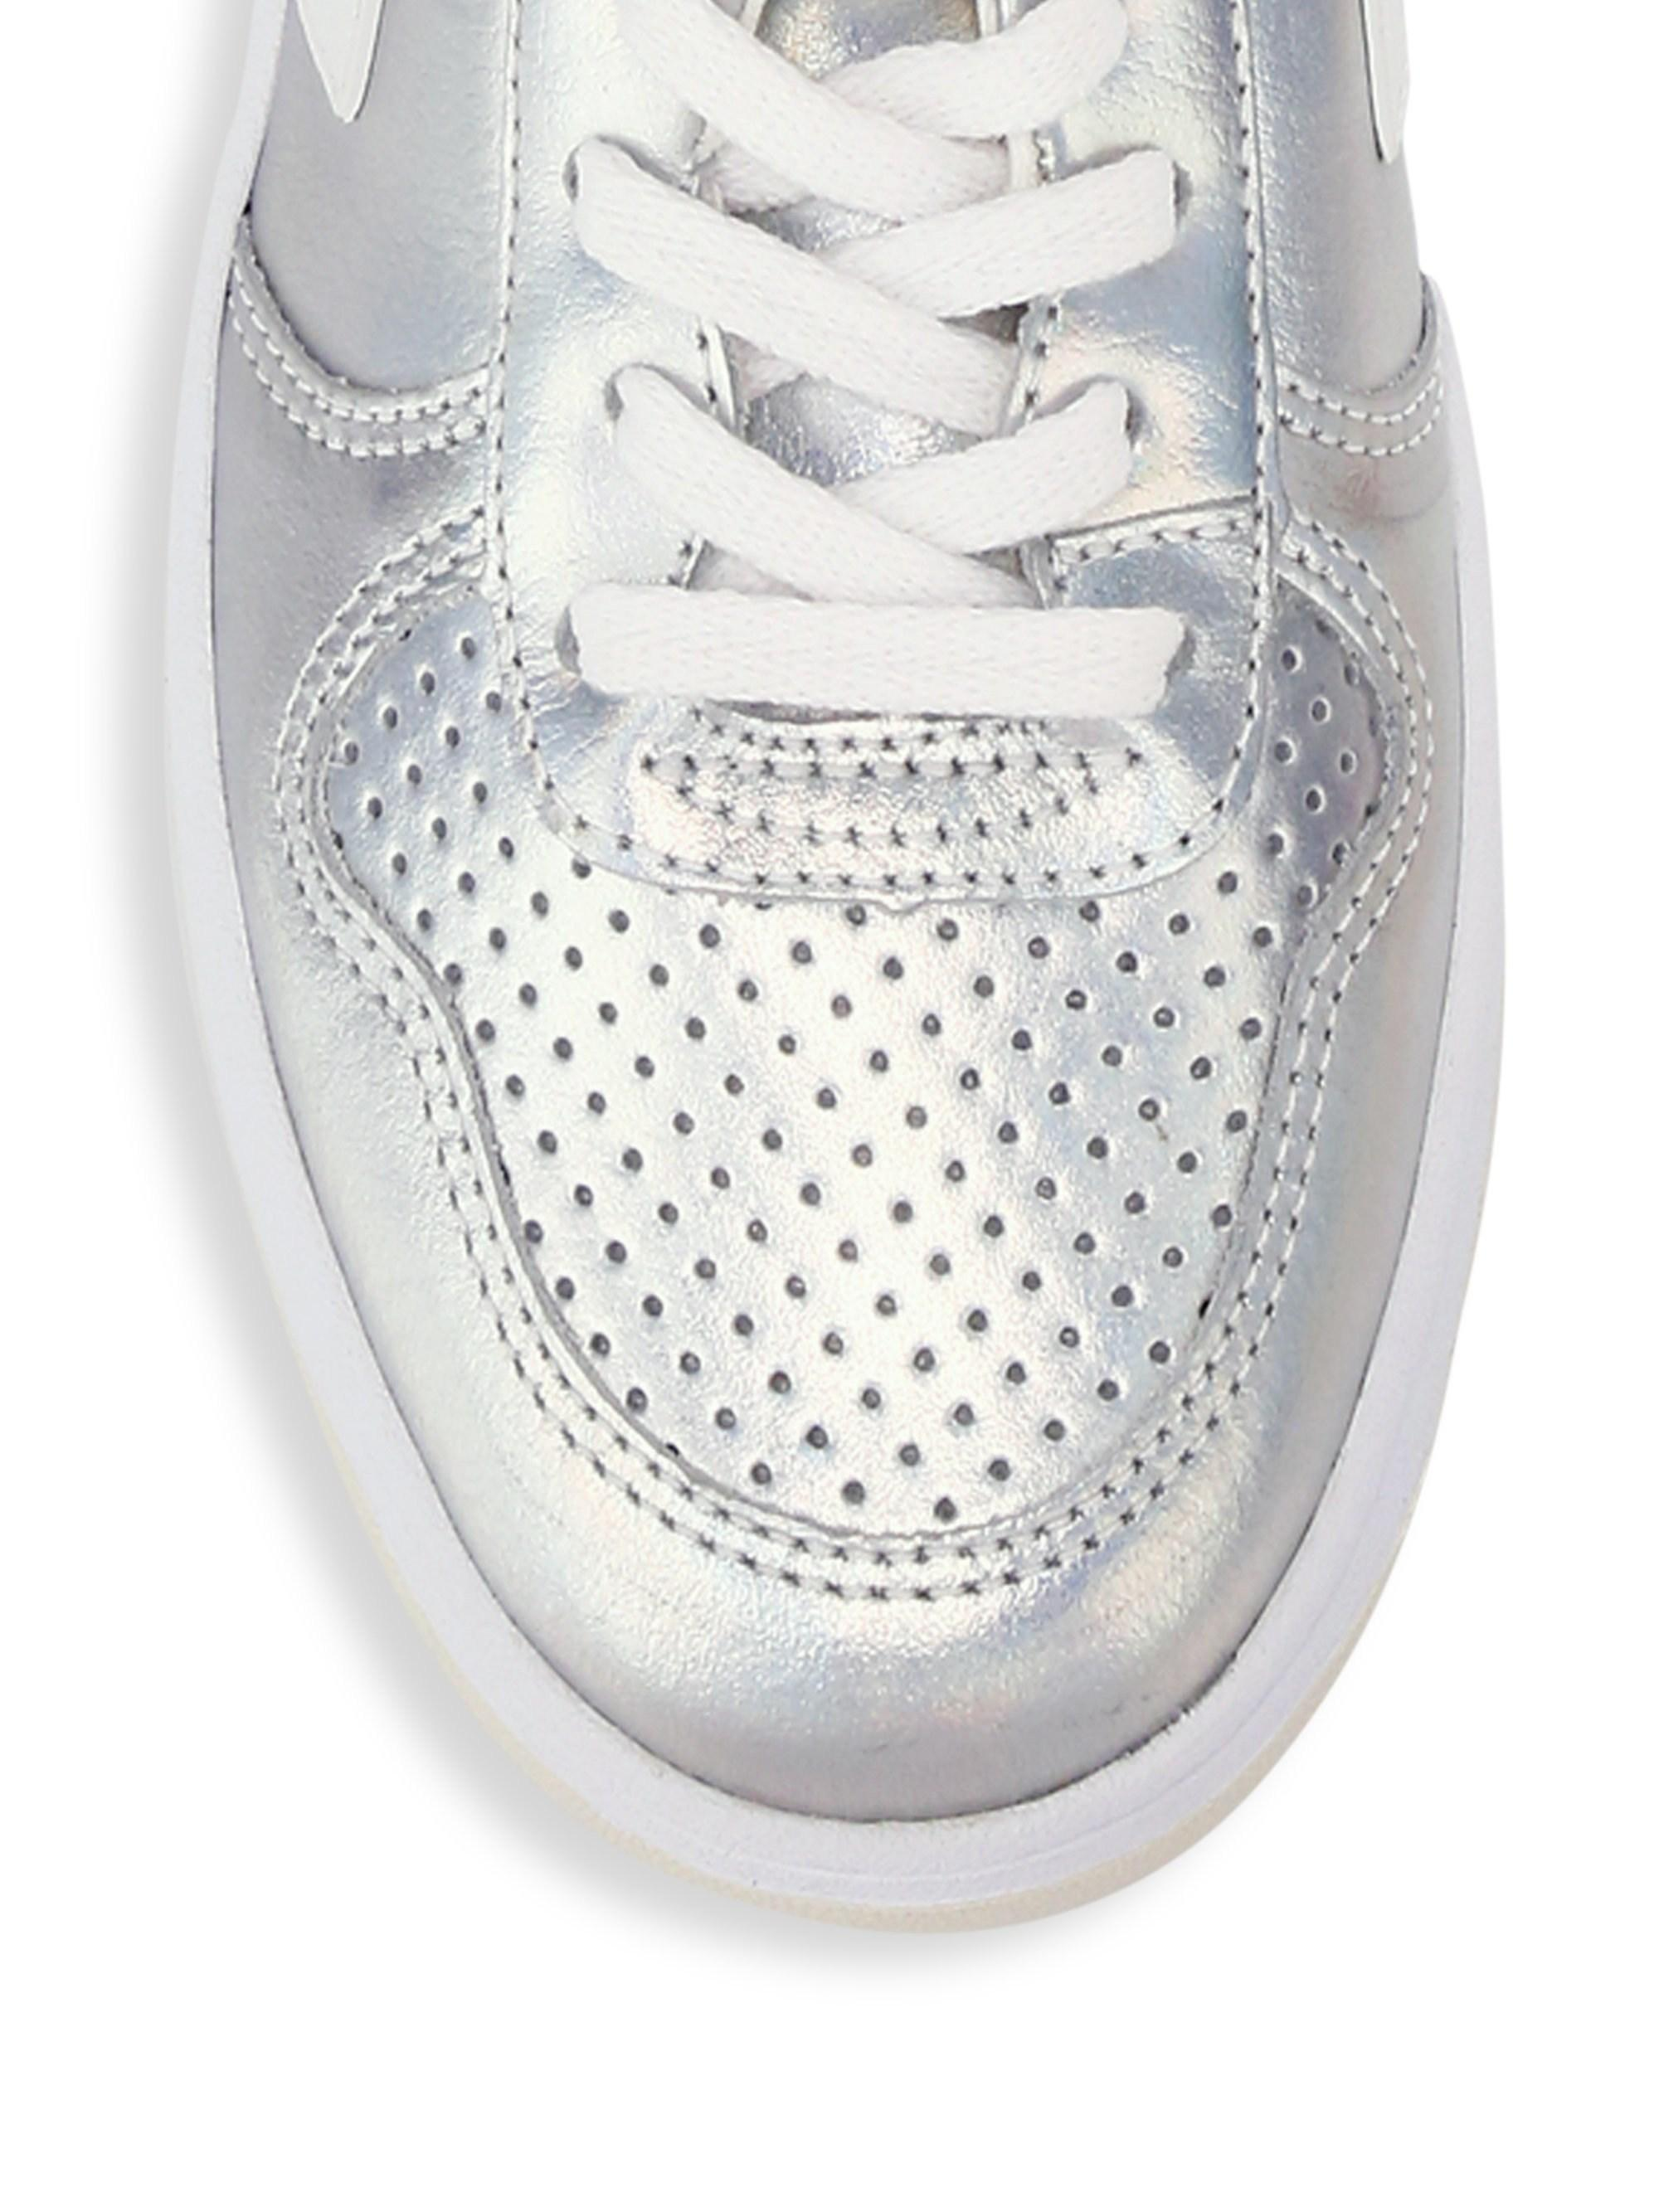 V Veja Leather Silver 10 Unicorn Low Top Lyst Sneakers Women's n0Nw8m